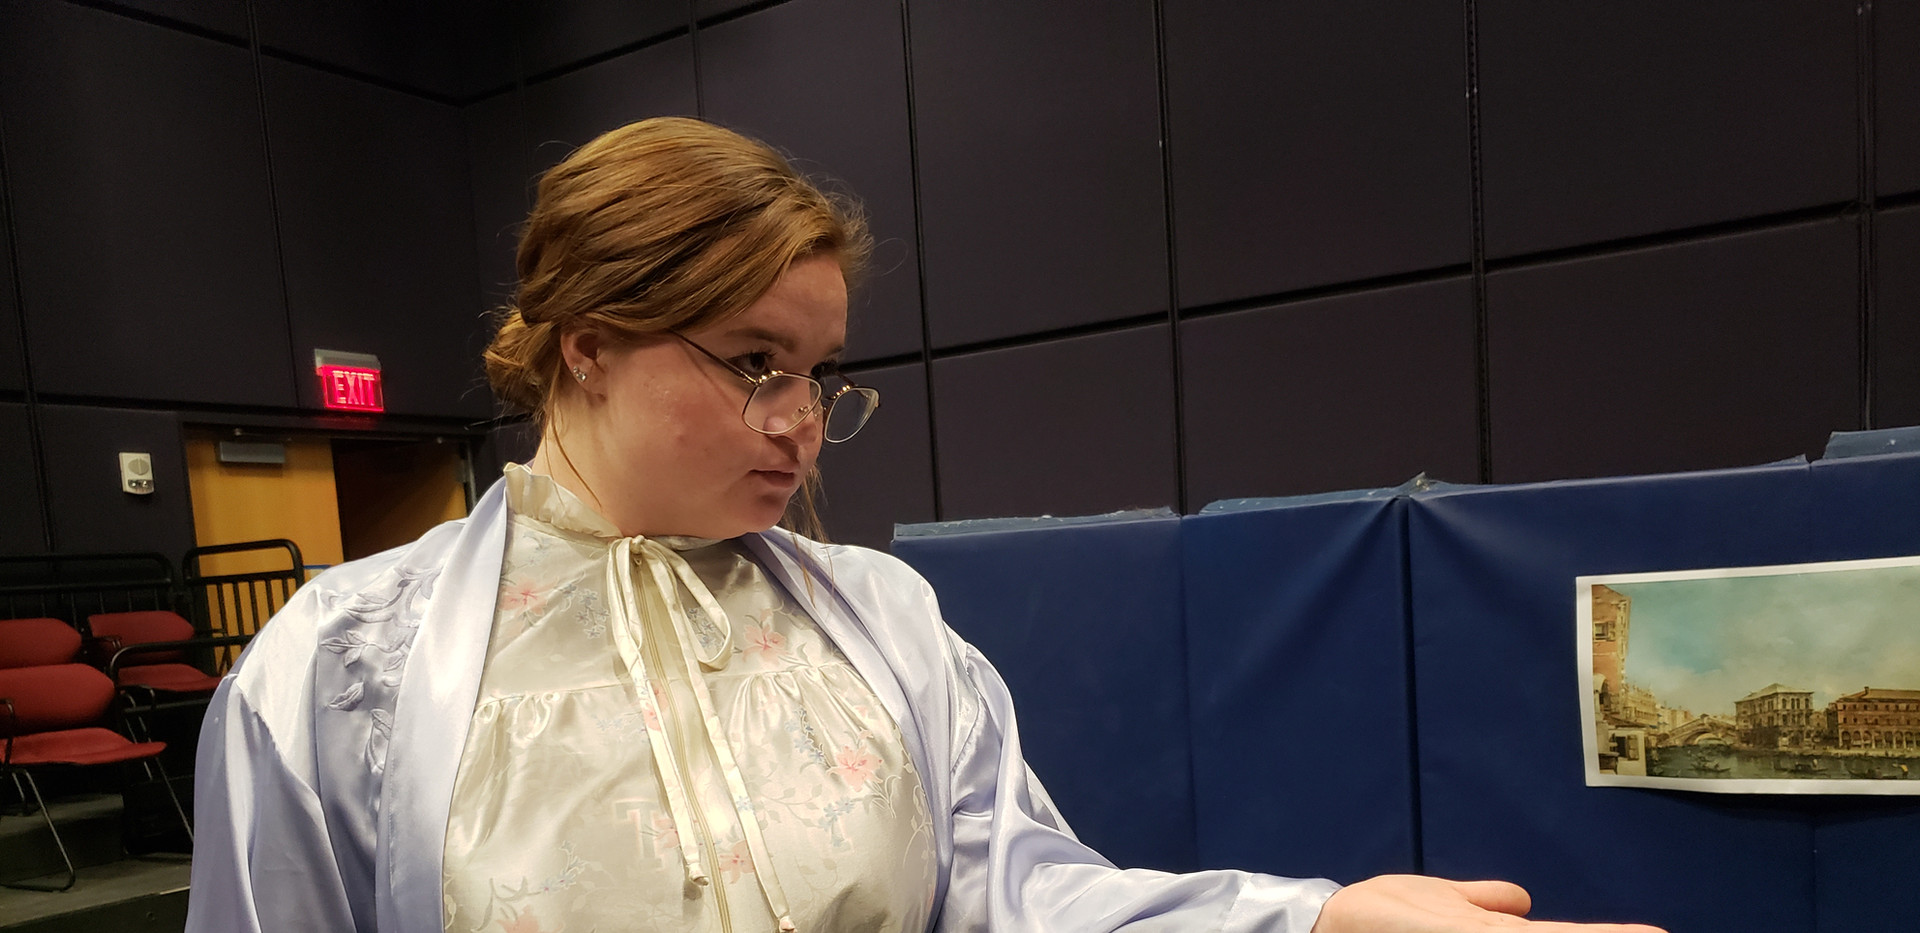 Sydney Kendrick as Mrs. Tilford in The Children's Hour by Lillian Hellman.